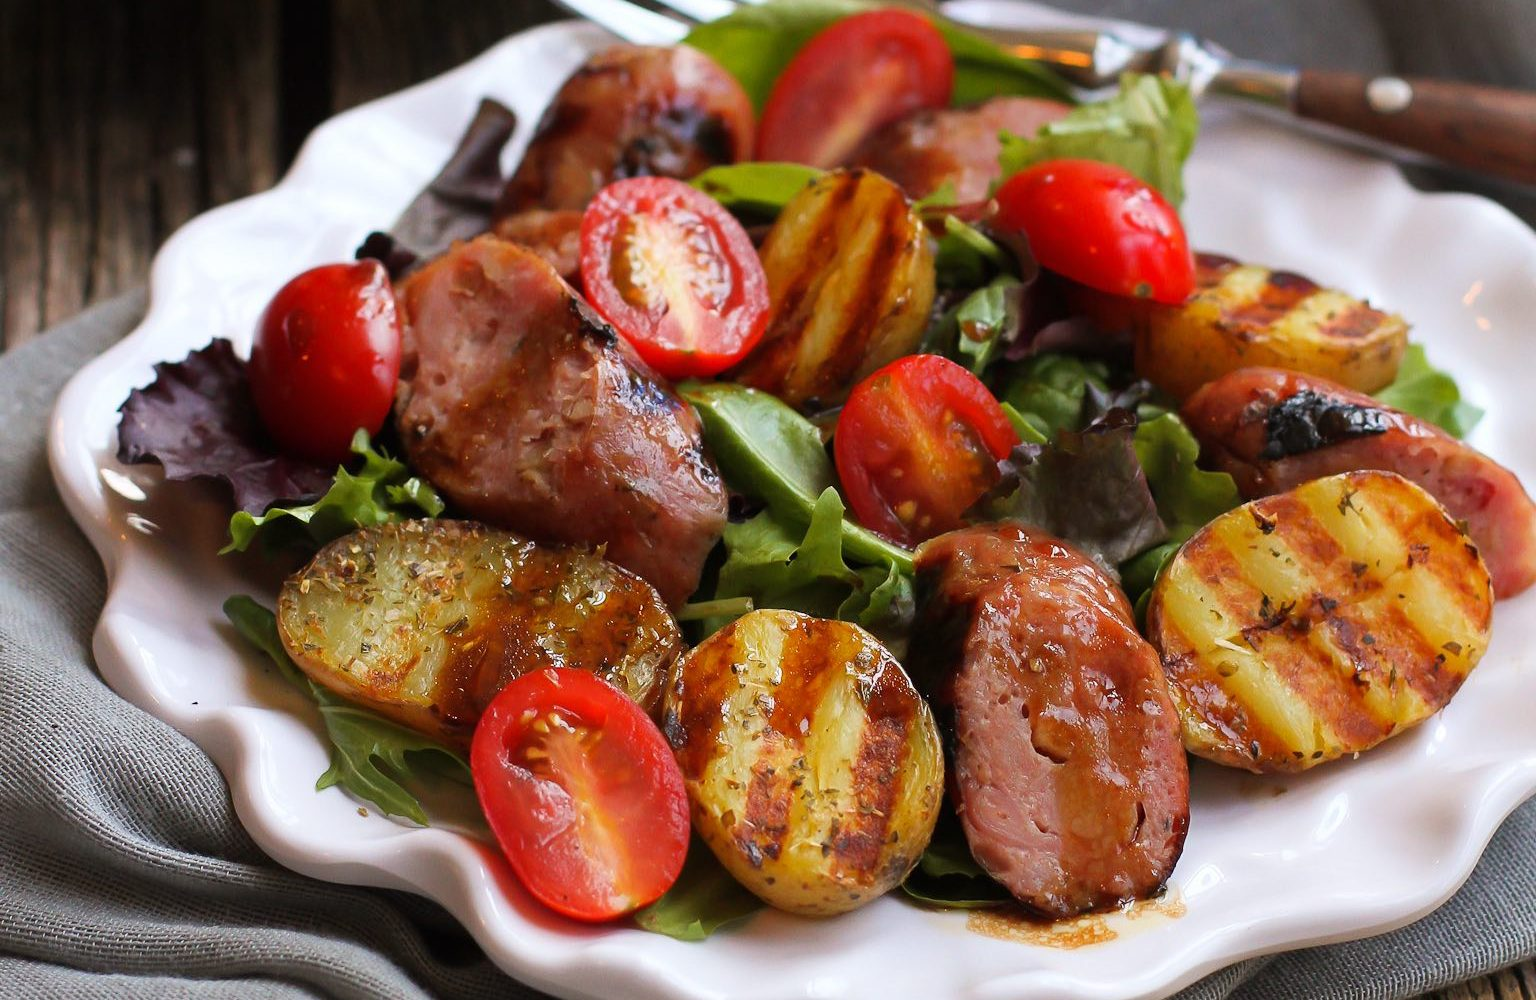 Grilled Sausage, Potato, and Mixed Green Salad